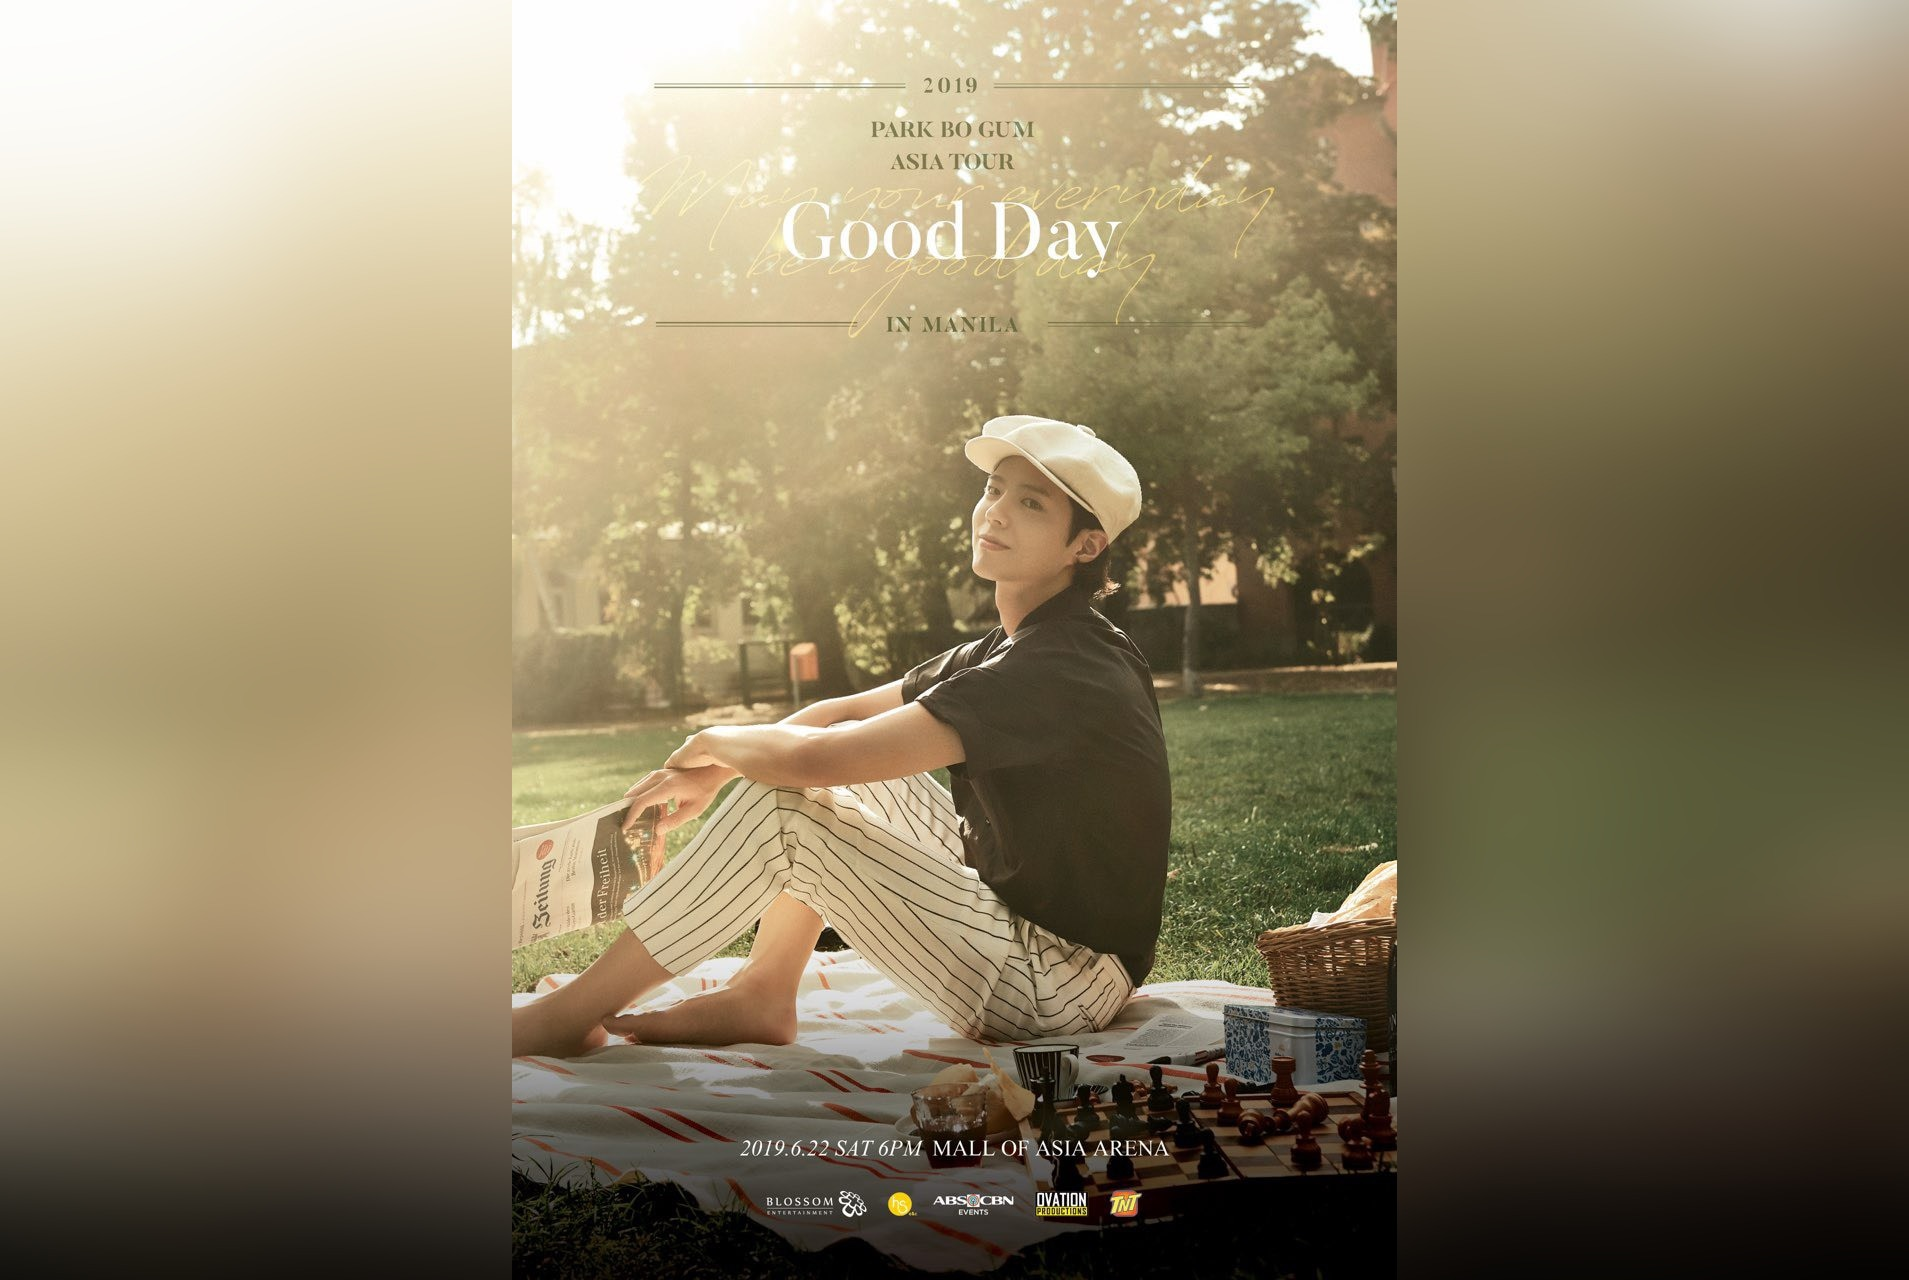 Park Bo Gum encounters Pinoy fans on Saturday